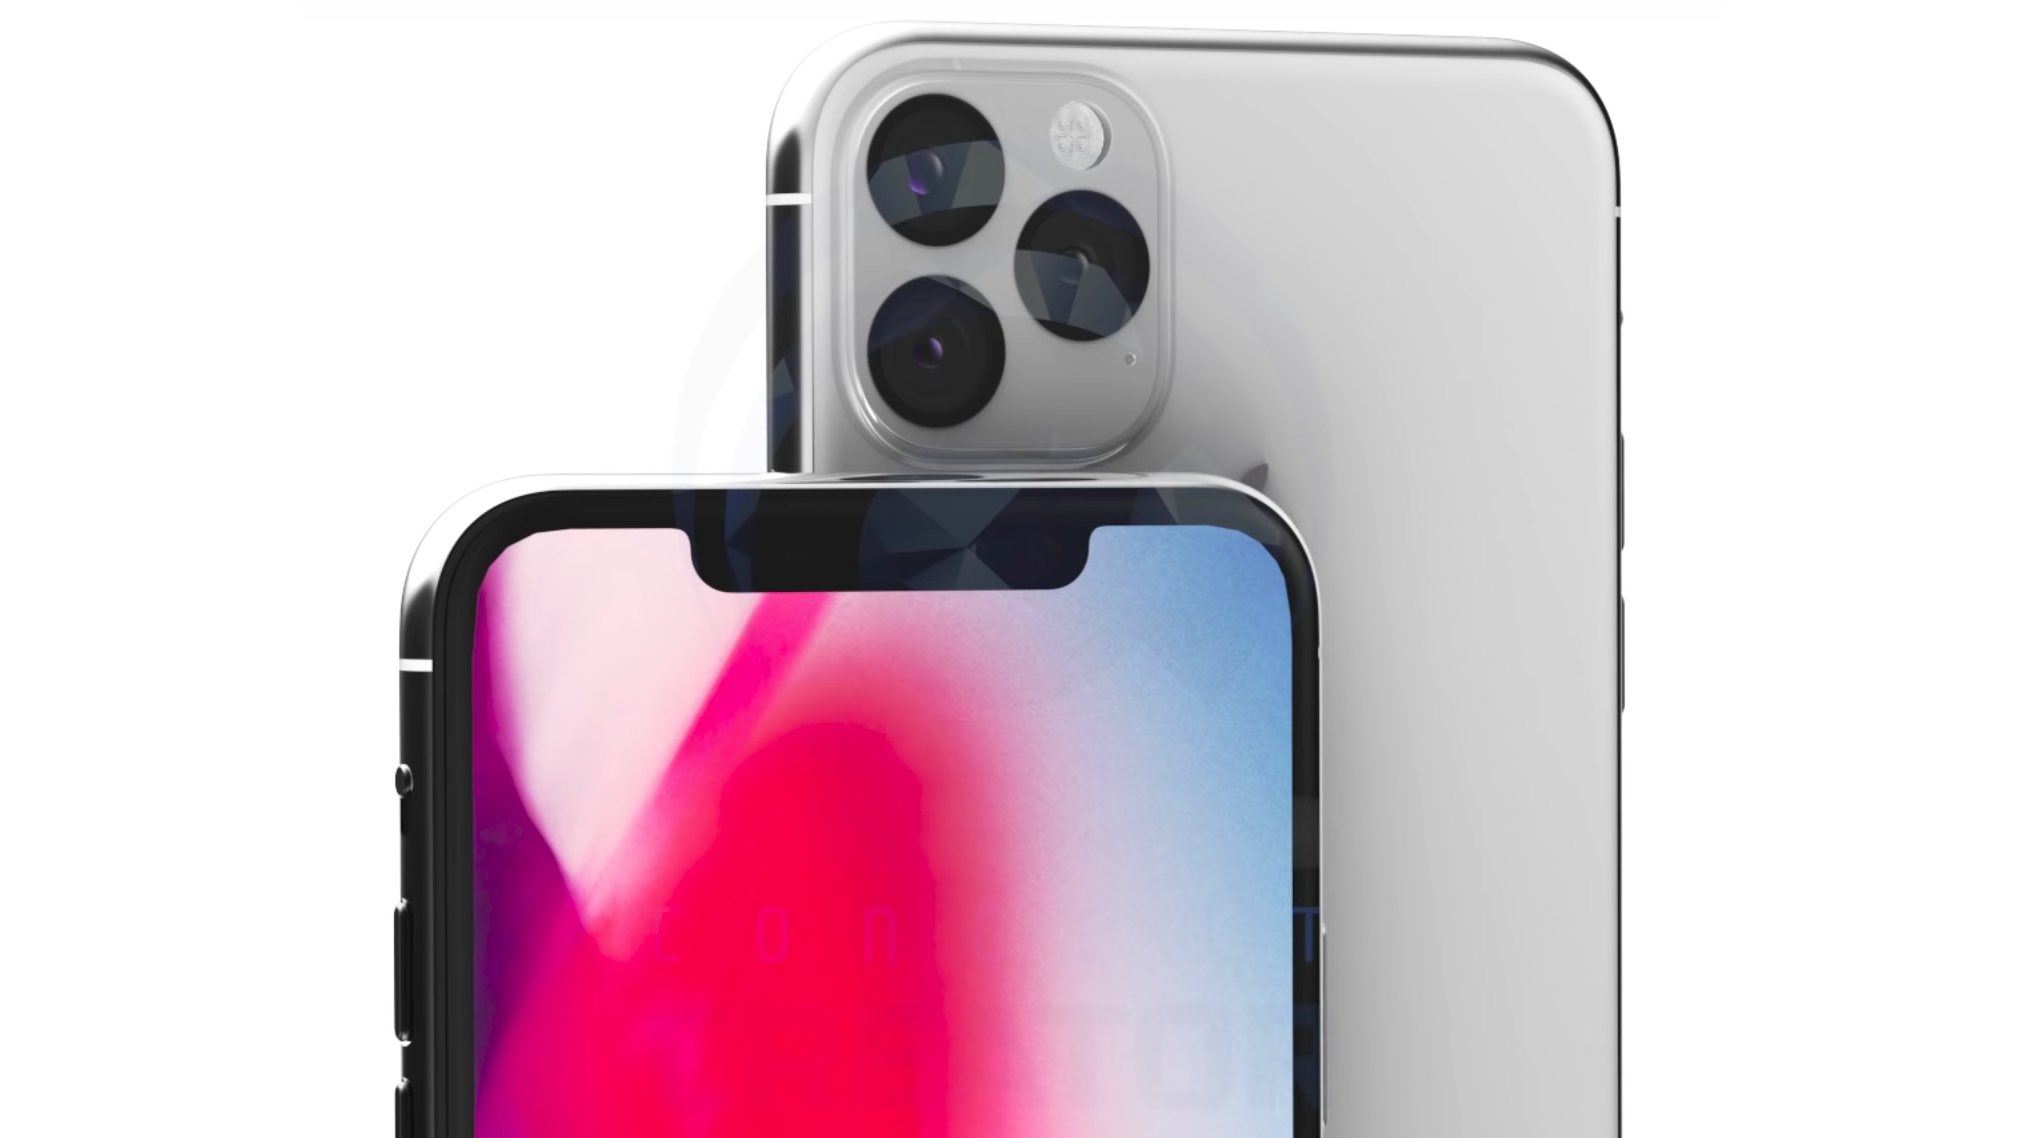 Best upcoming phones 2019: Release dates for the most anticipated